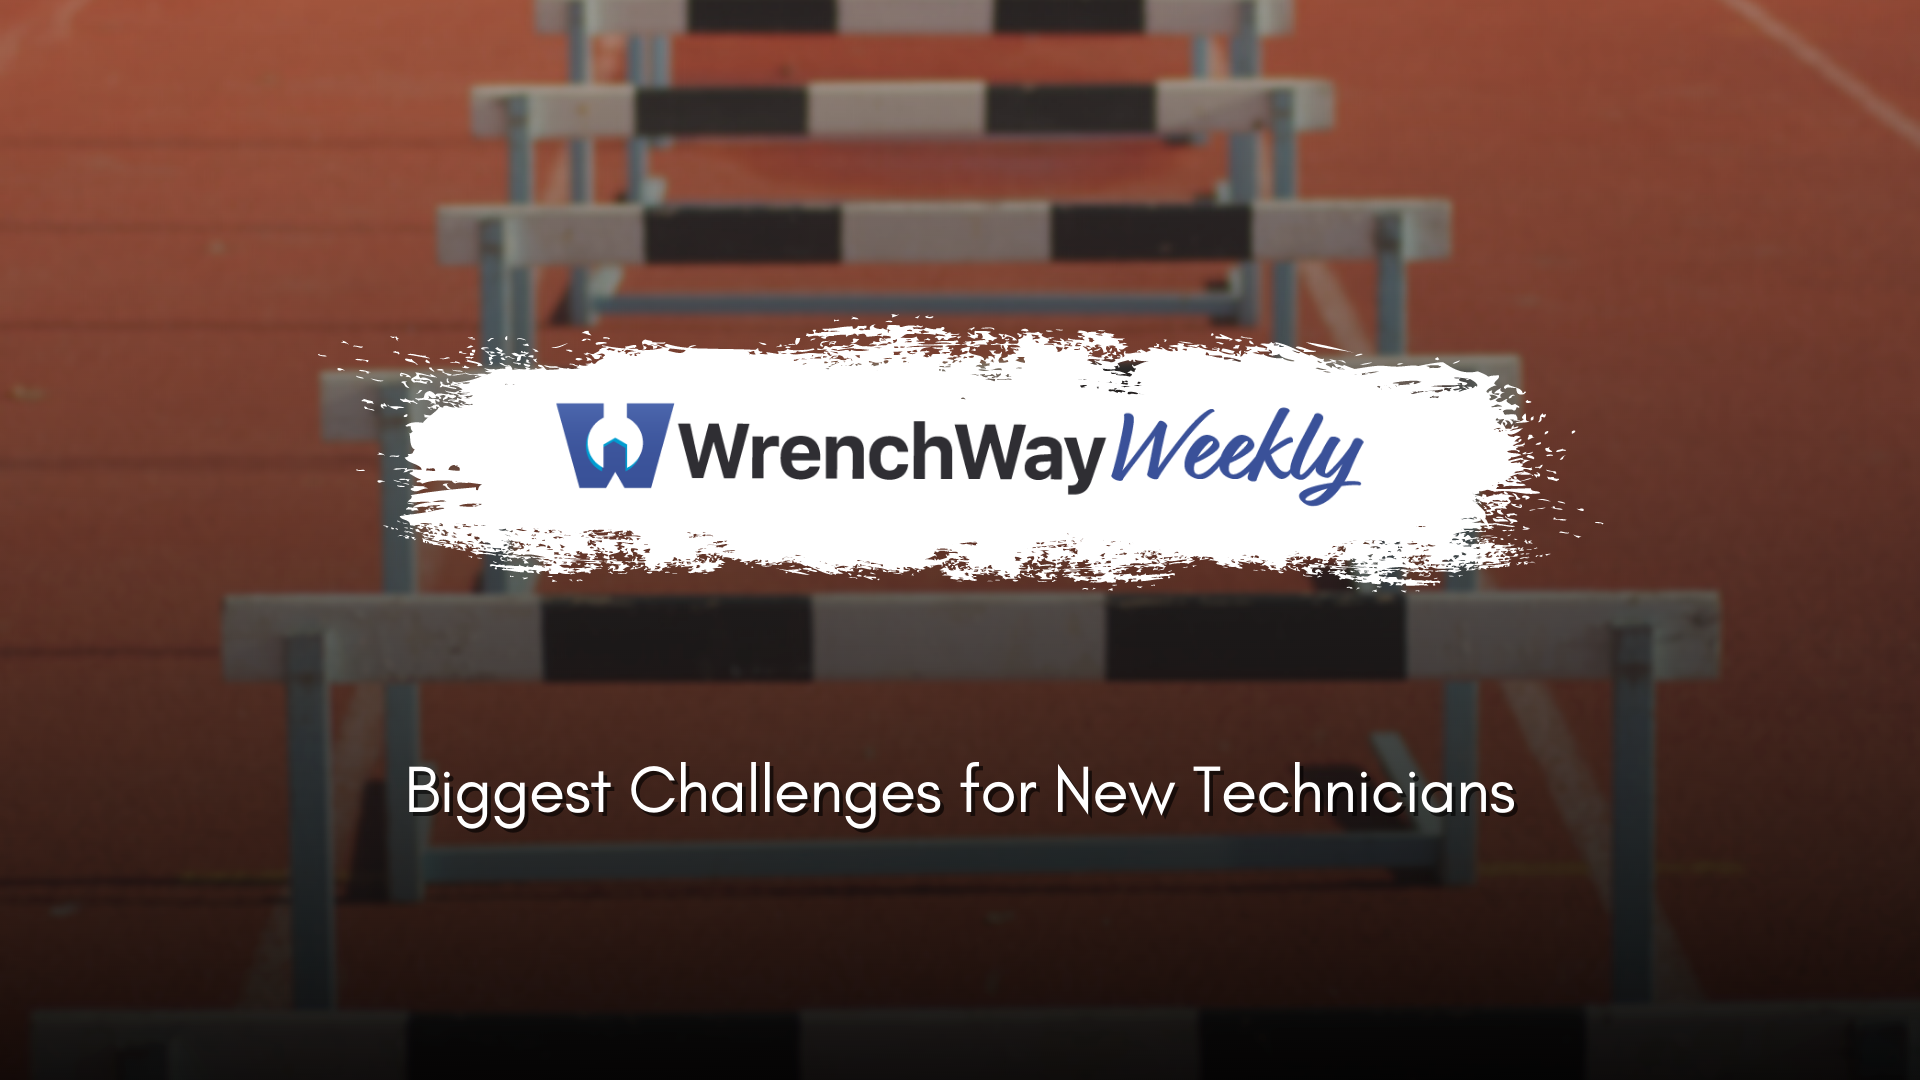 wrenchway weekly episode challenges for new technicians